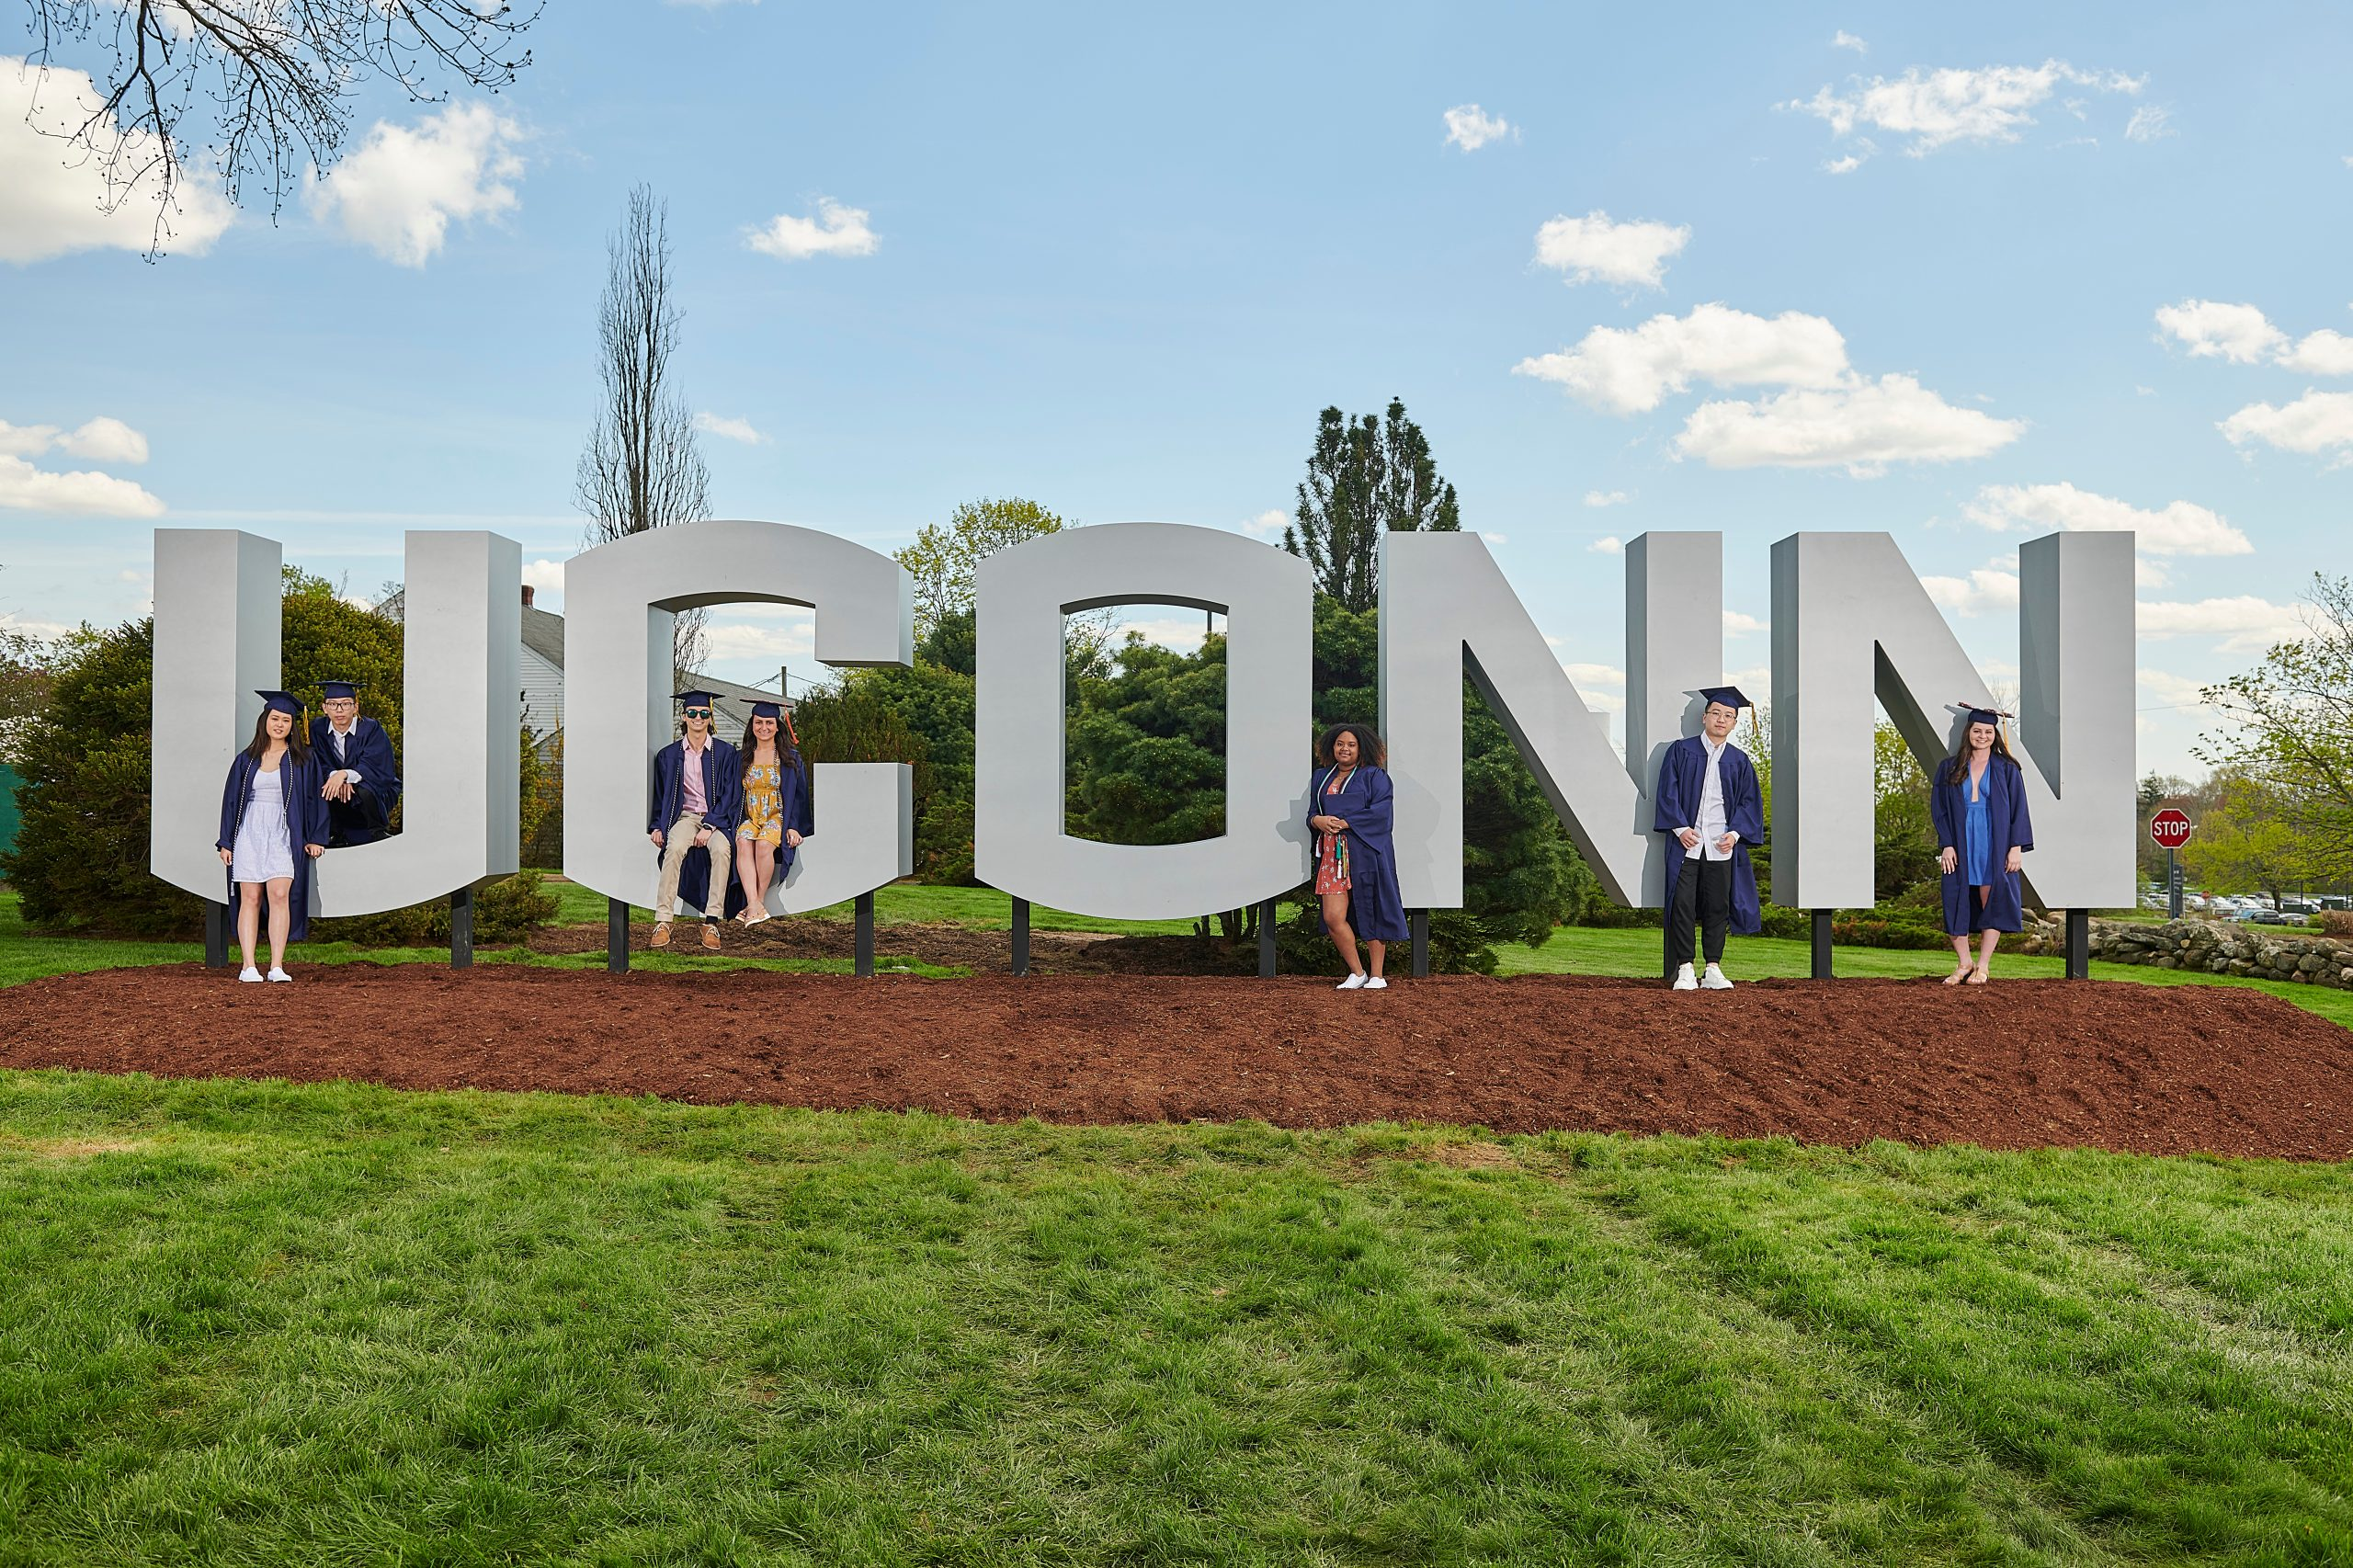 UConn sign with graduates